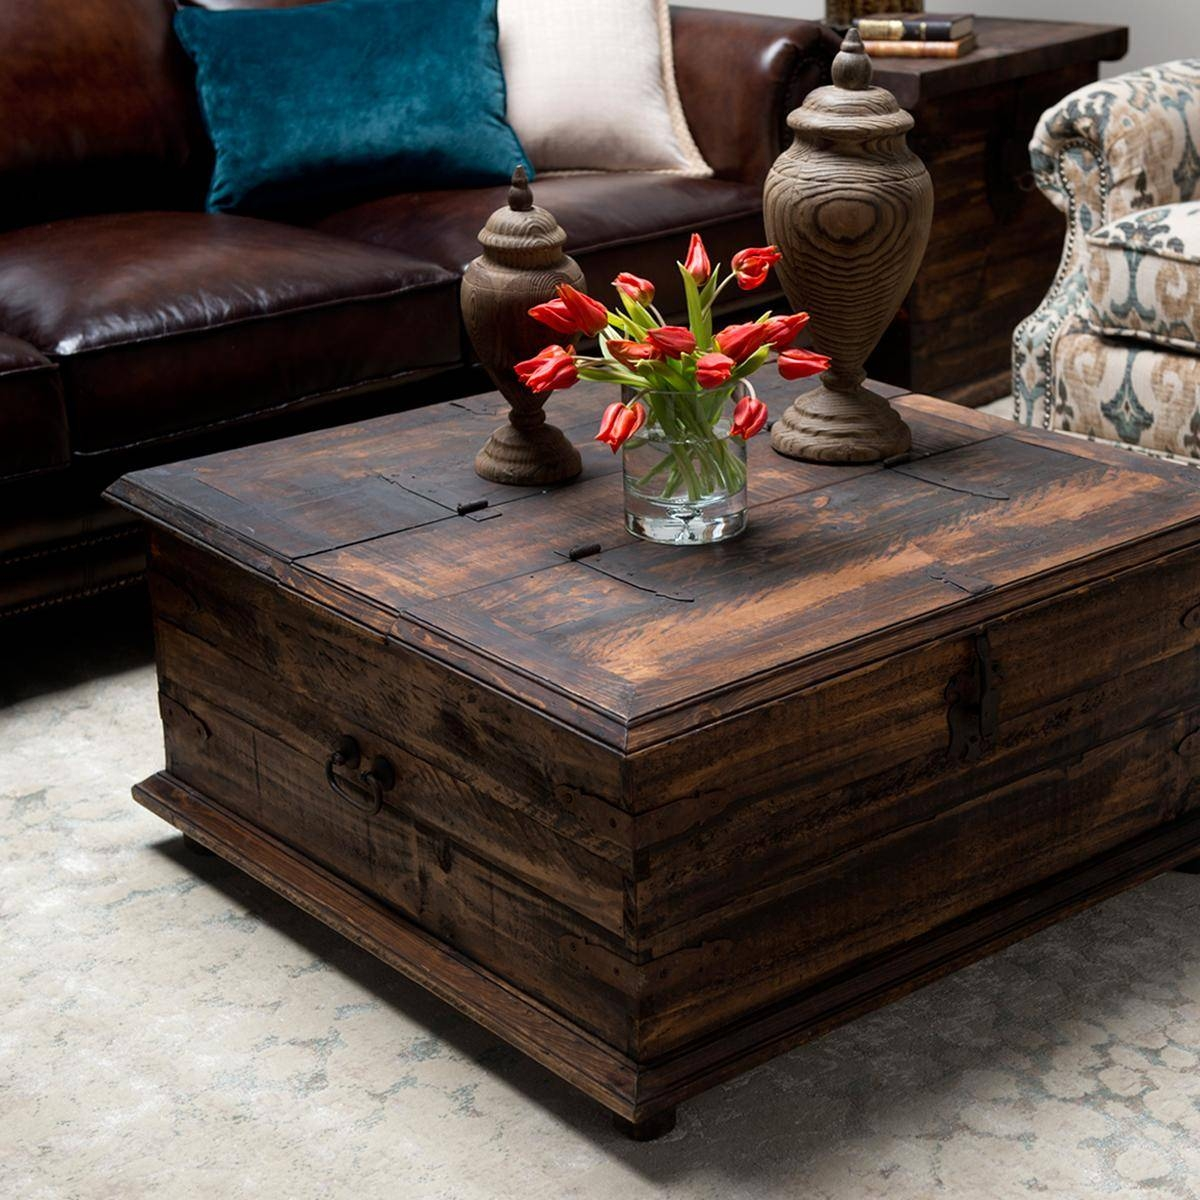 Furniture: Unique Rustic Coffee Table For Elegant Living Room inside Square Dark Wood Coffee Tables (Image 18 of 30)